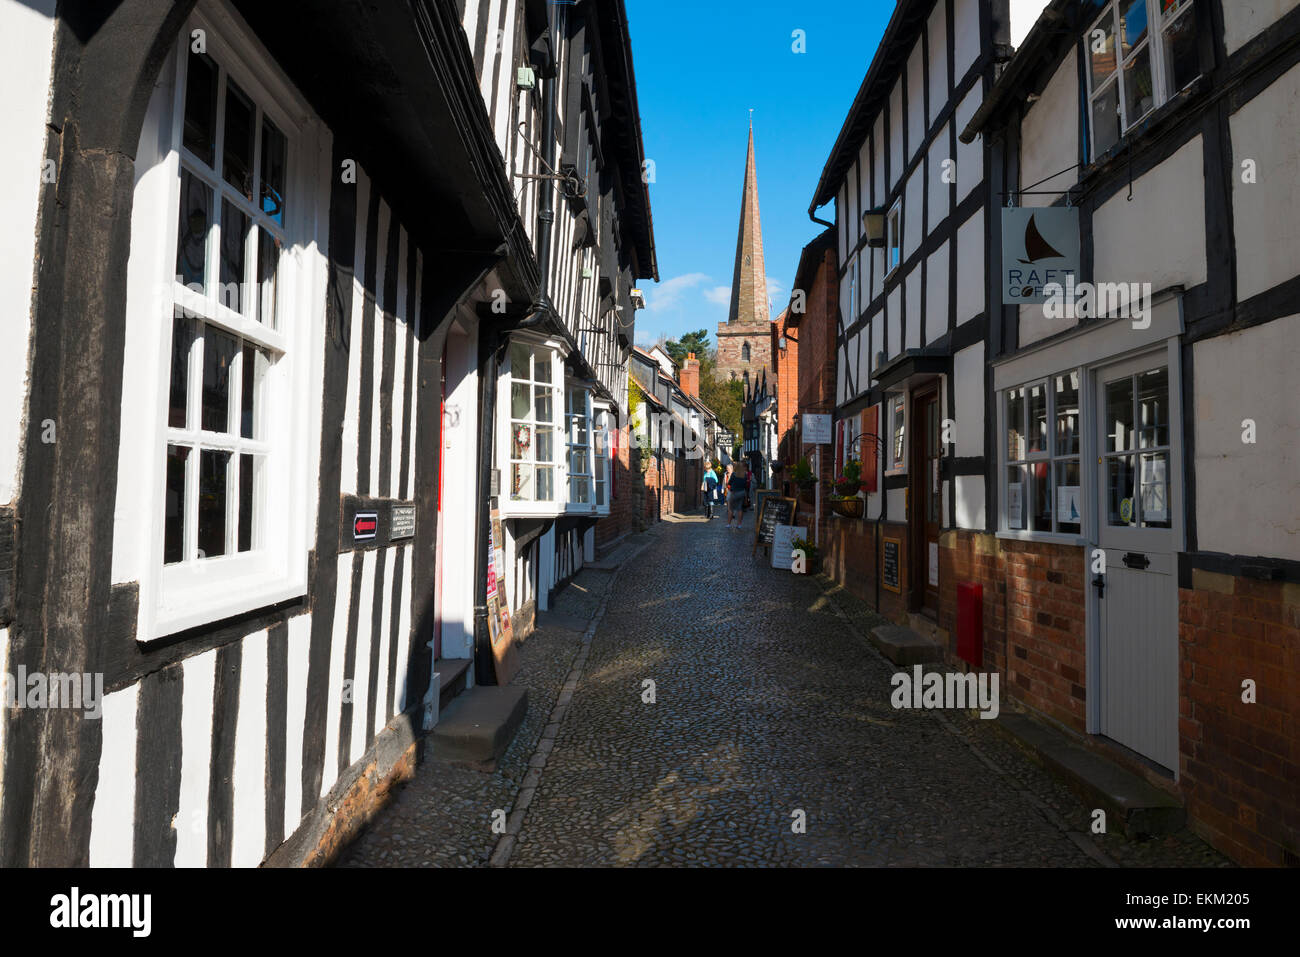 Historic Church Lane leading to St Michael and All Angels church in Ledbury, Herefordshire, England. - Stock Image